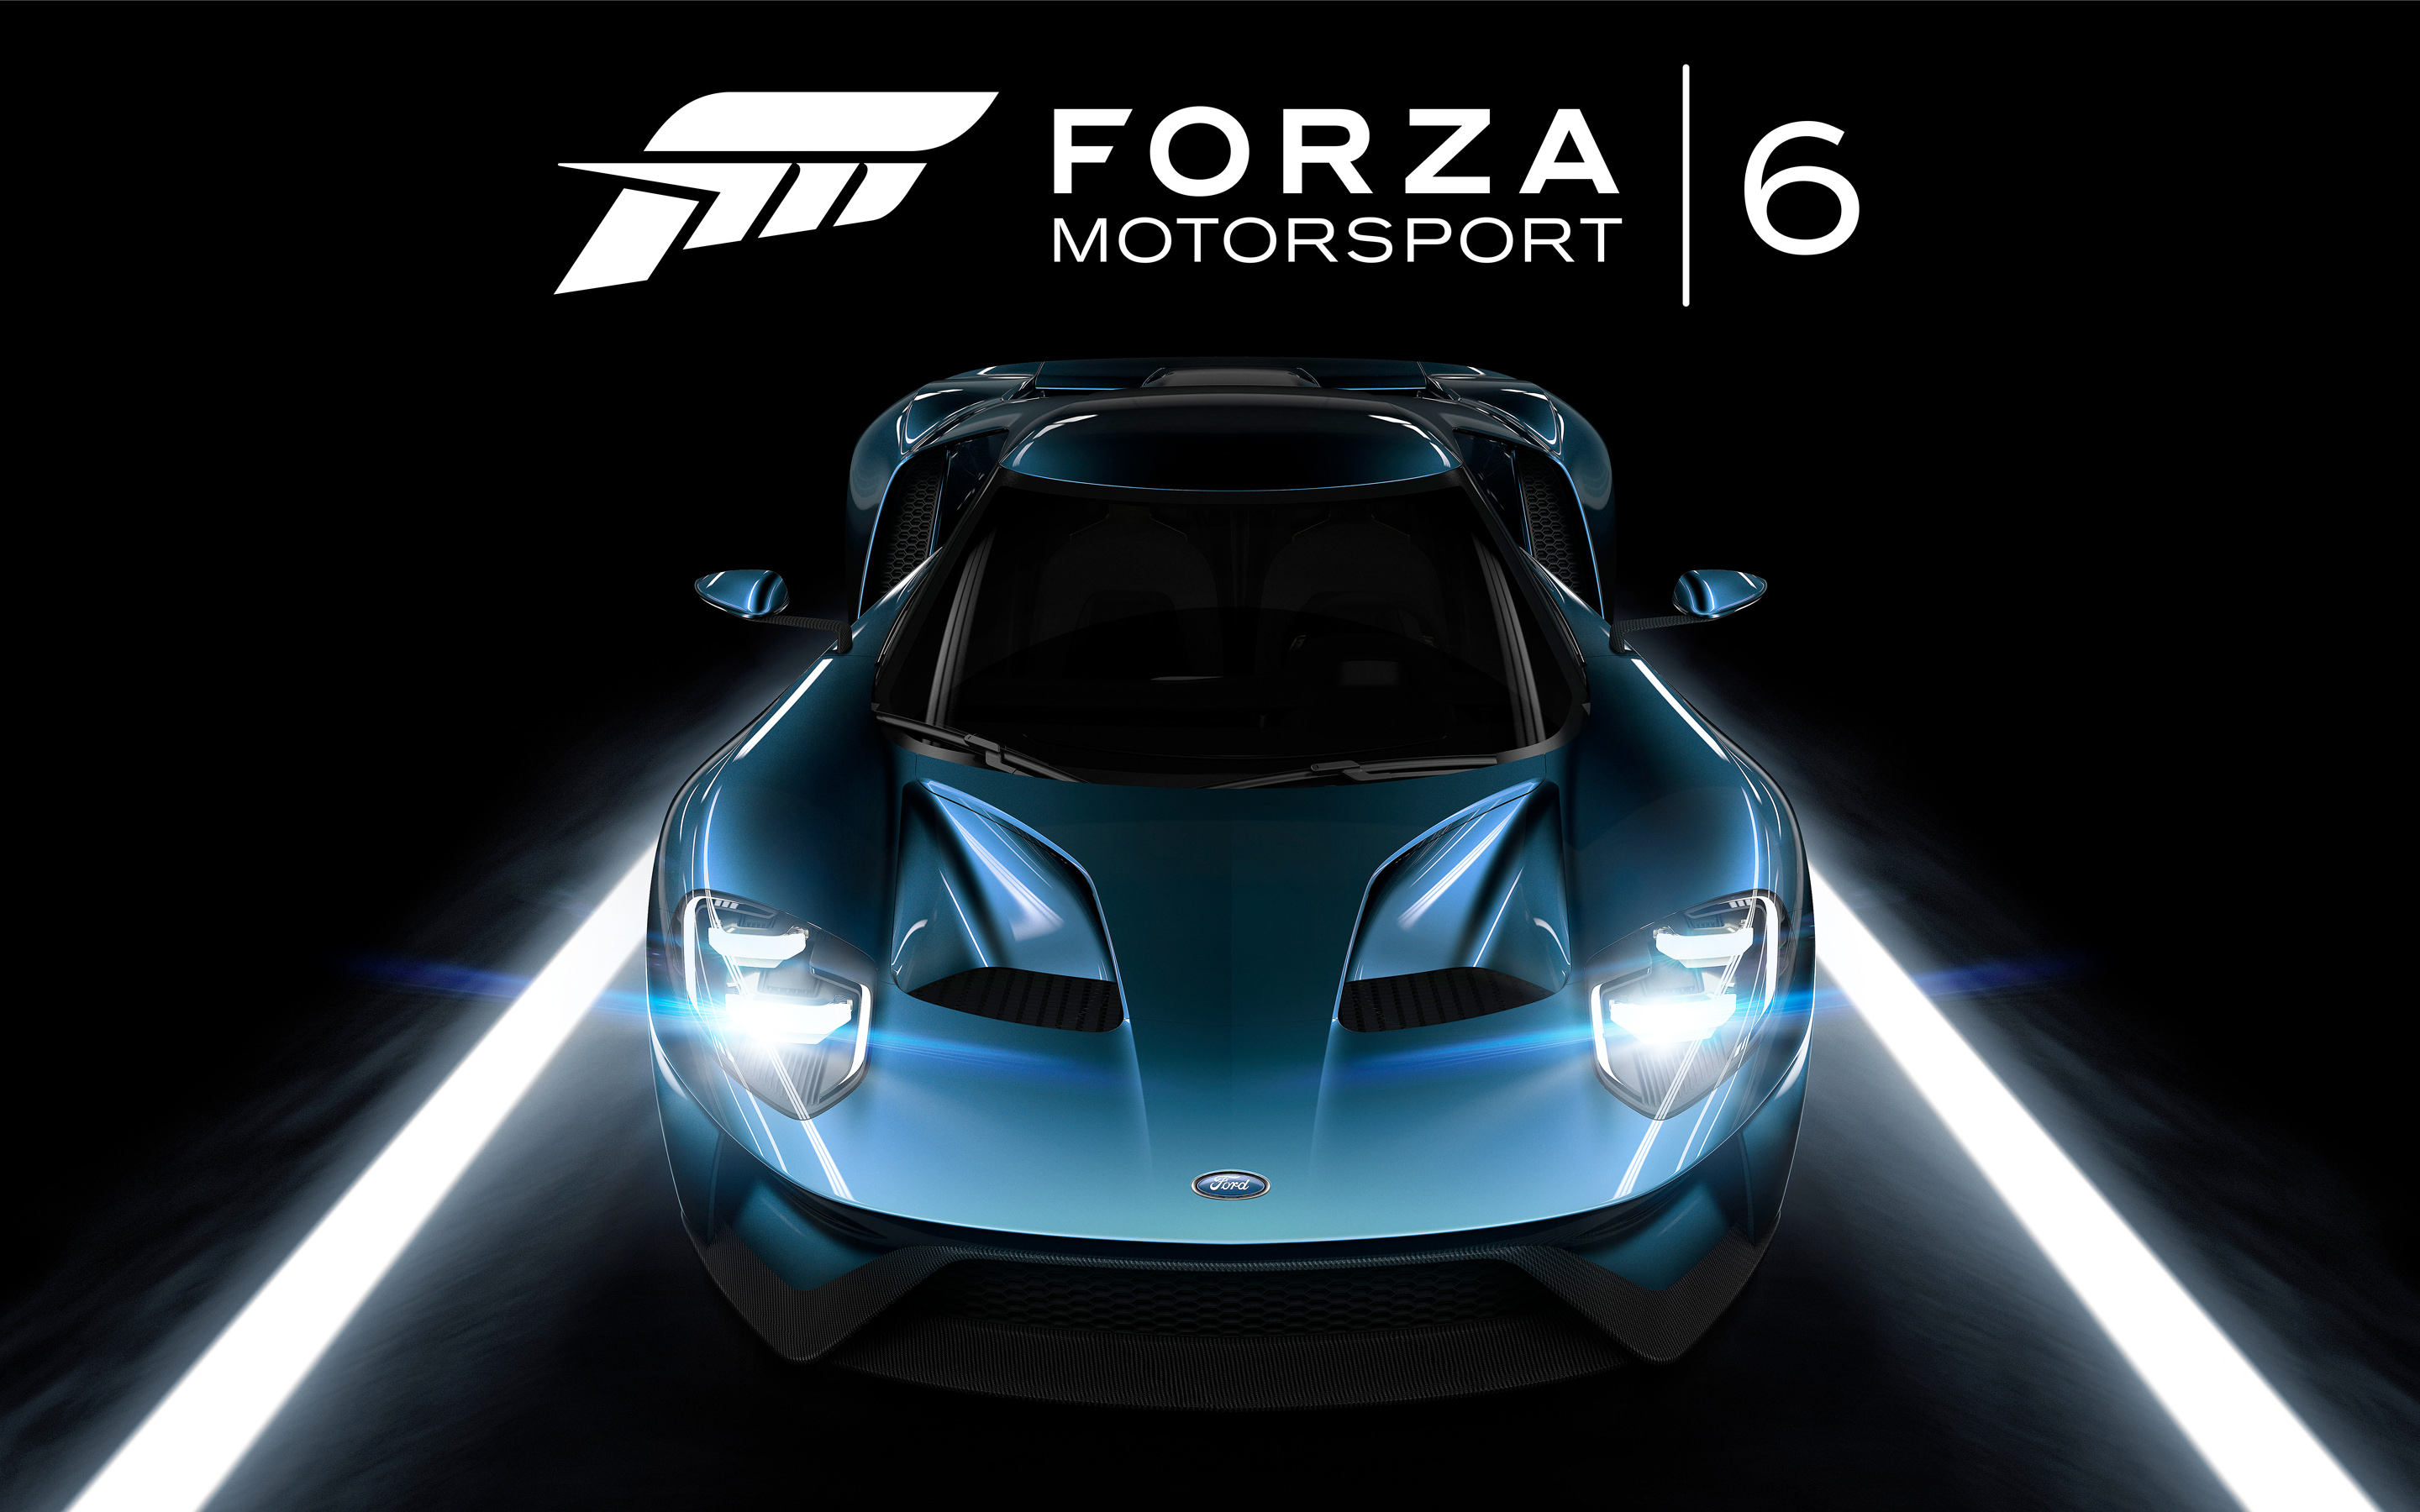 Ford GT In Forza Motosport 6